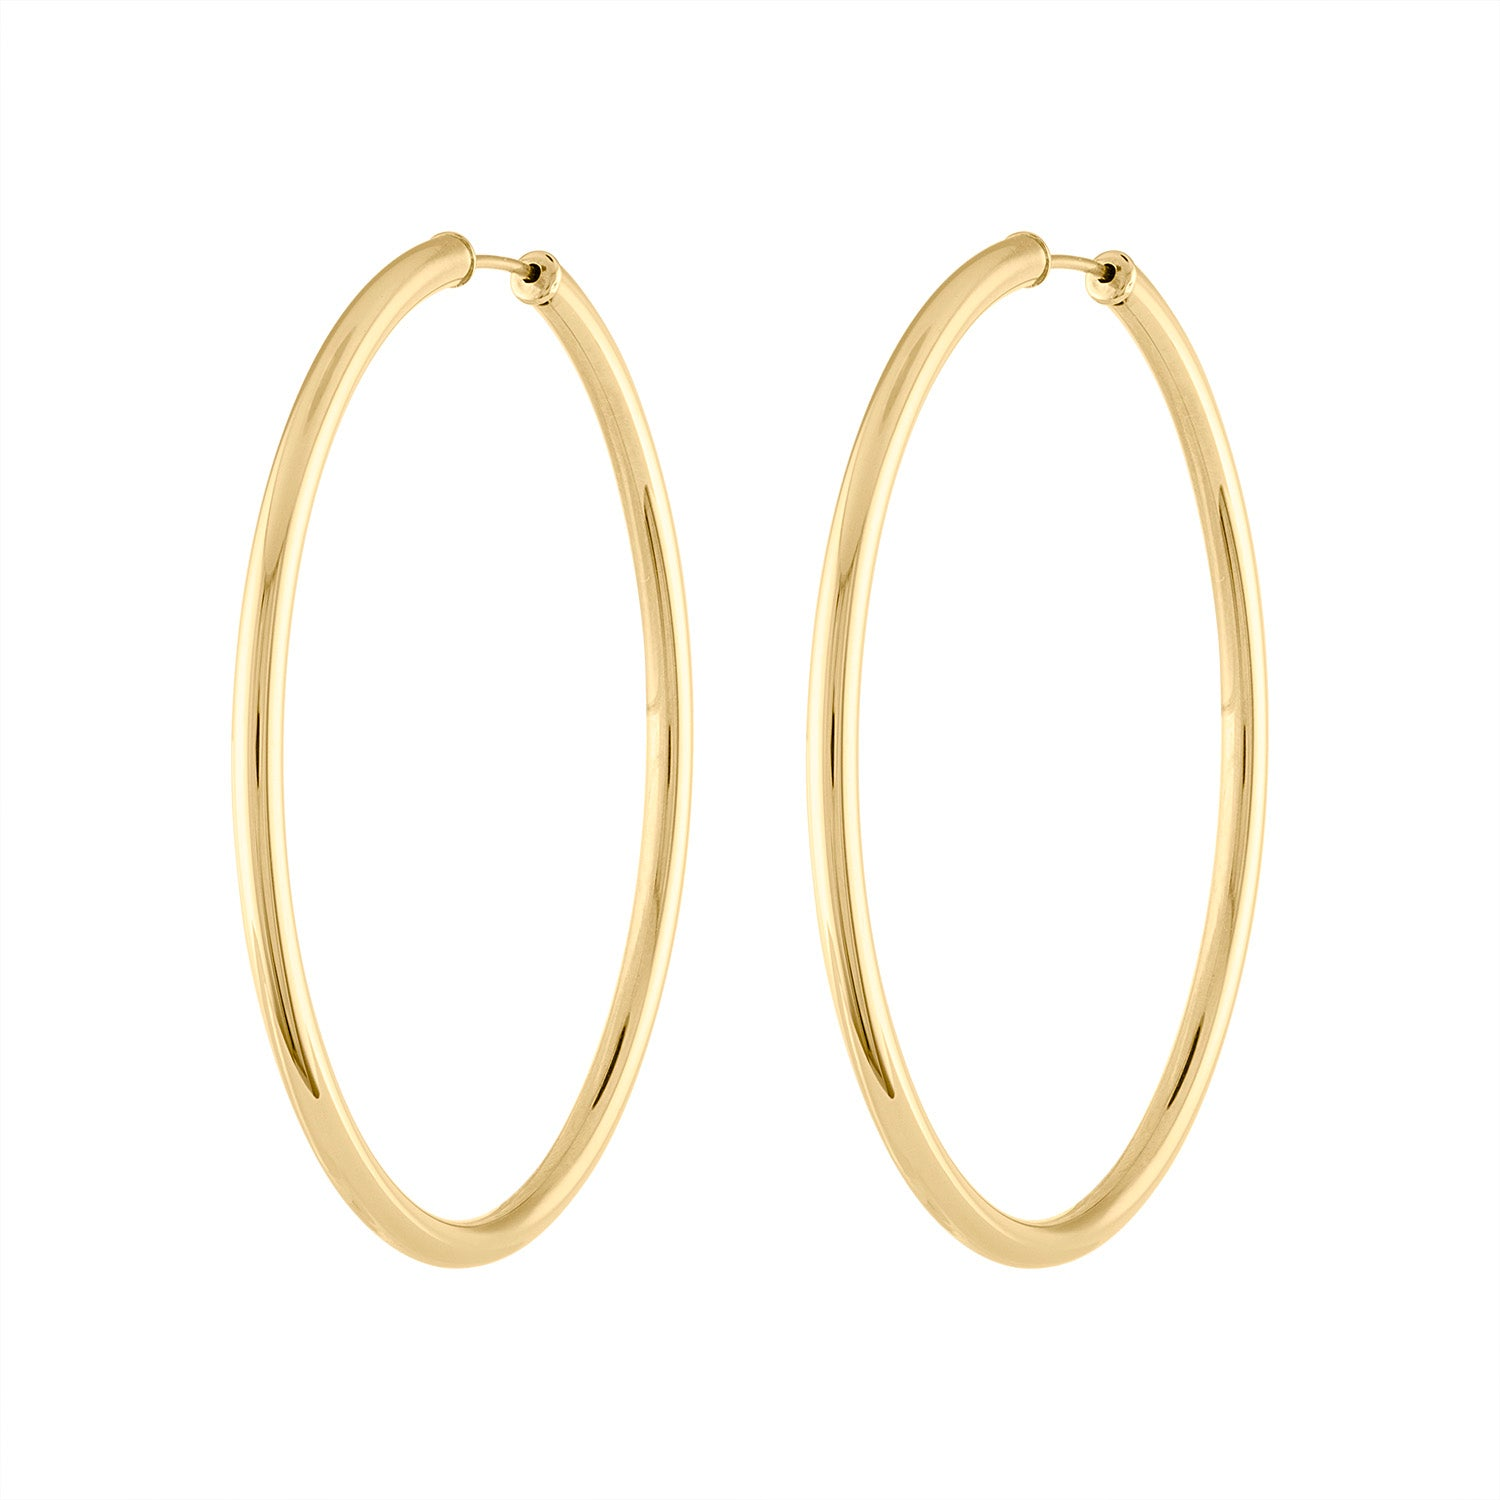 14KT GOLD 50MM ENDLESS HOOP EARRING